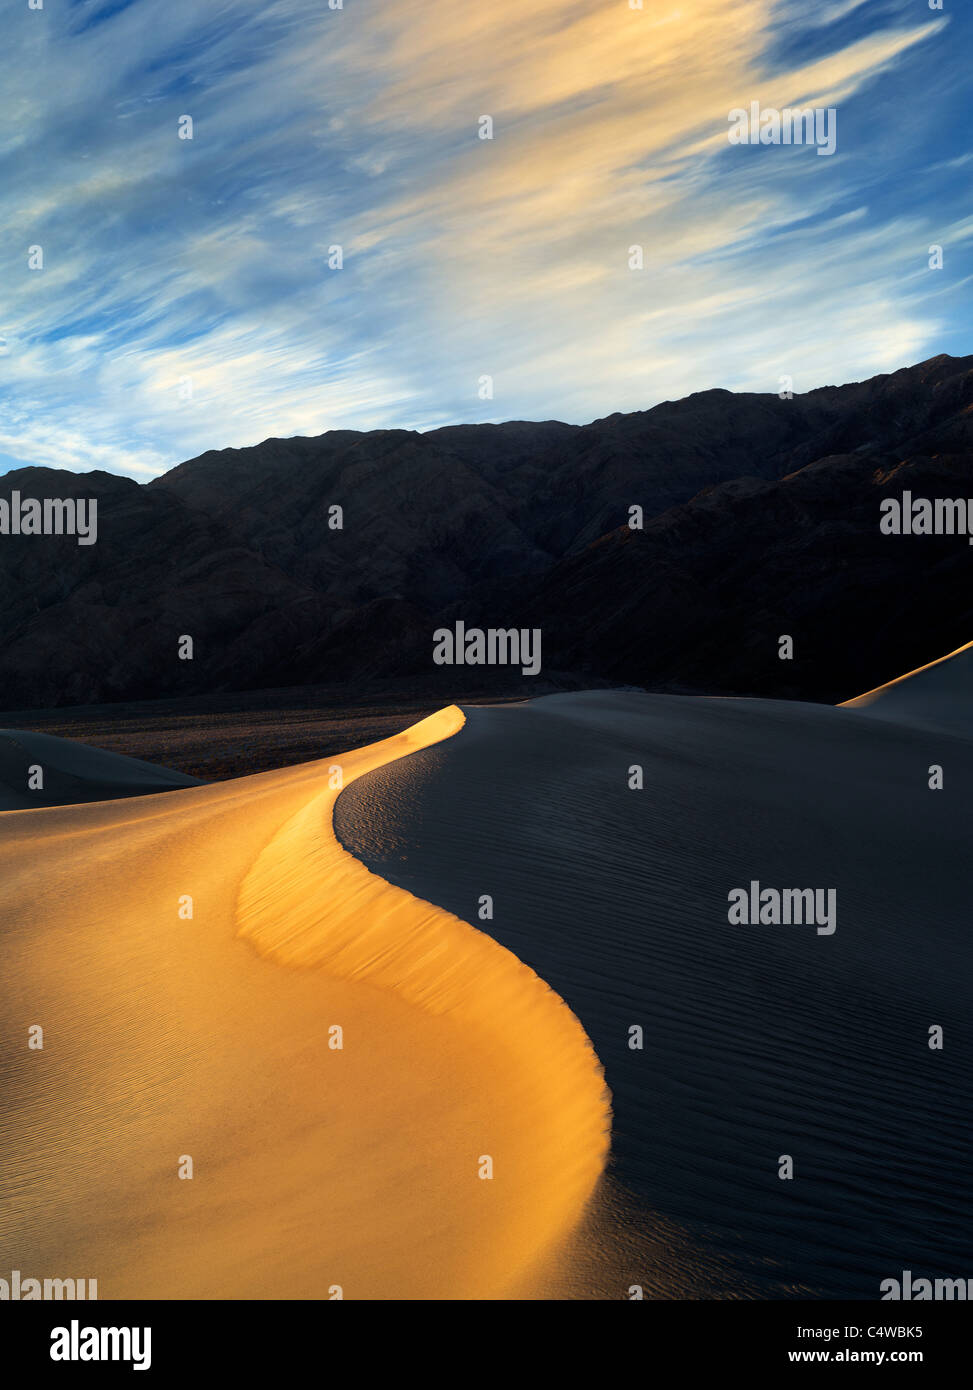 First light on sand dunes. Death Valley National Park, California. Sky has been added - Stock Image